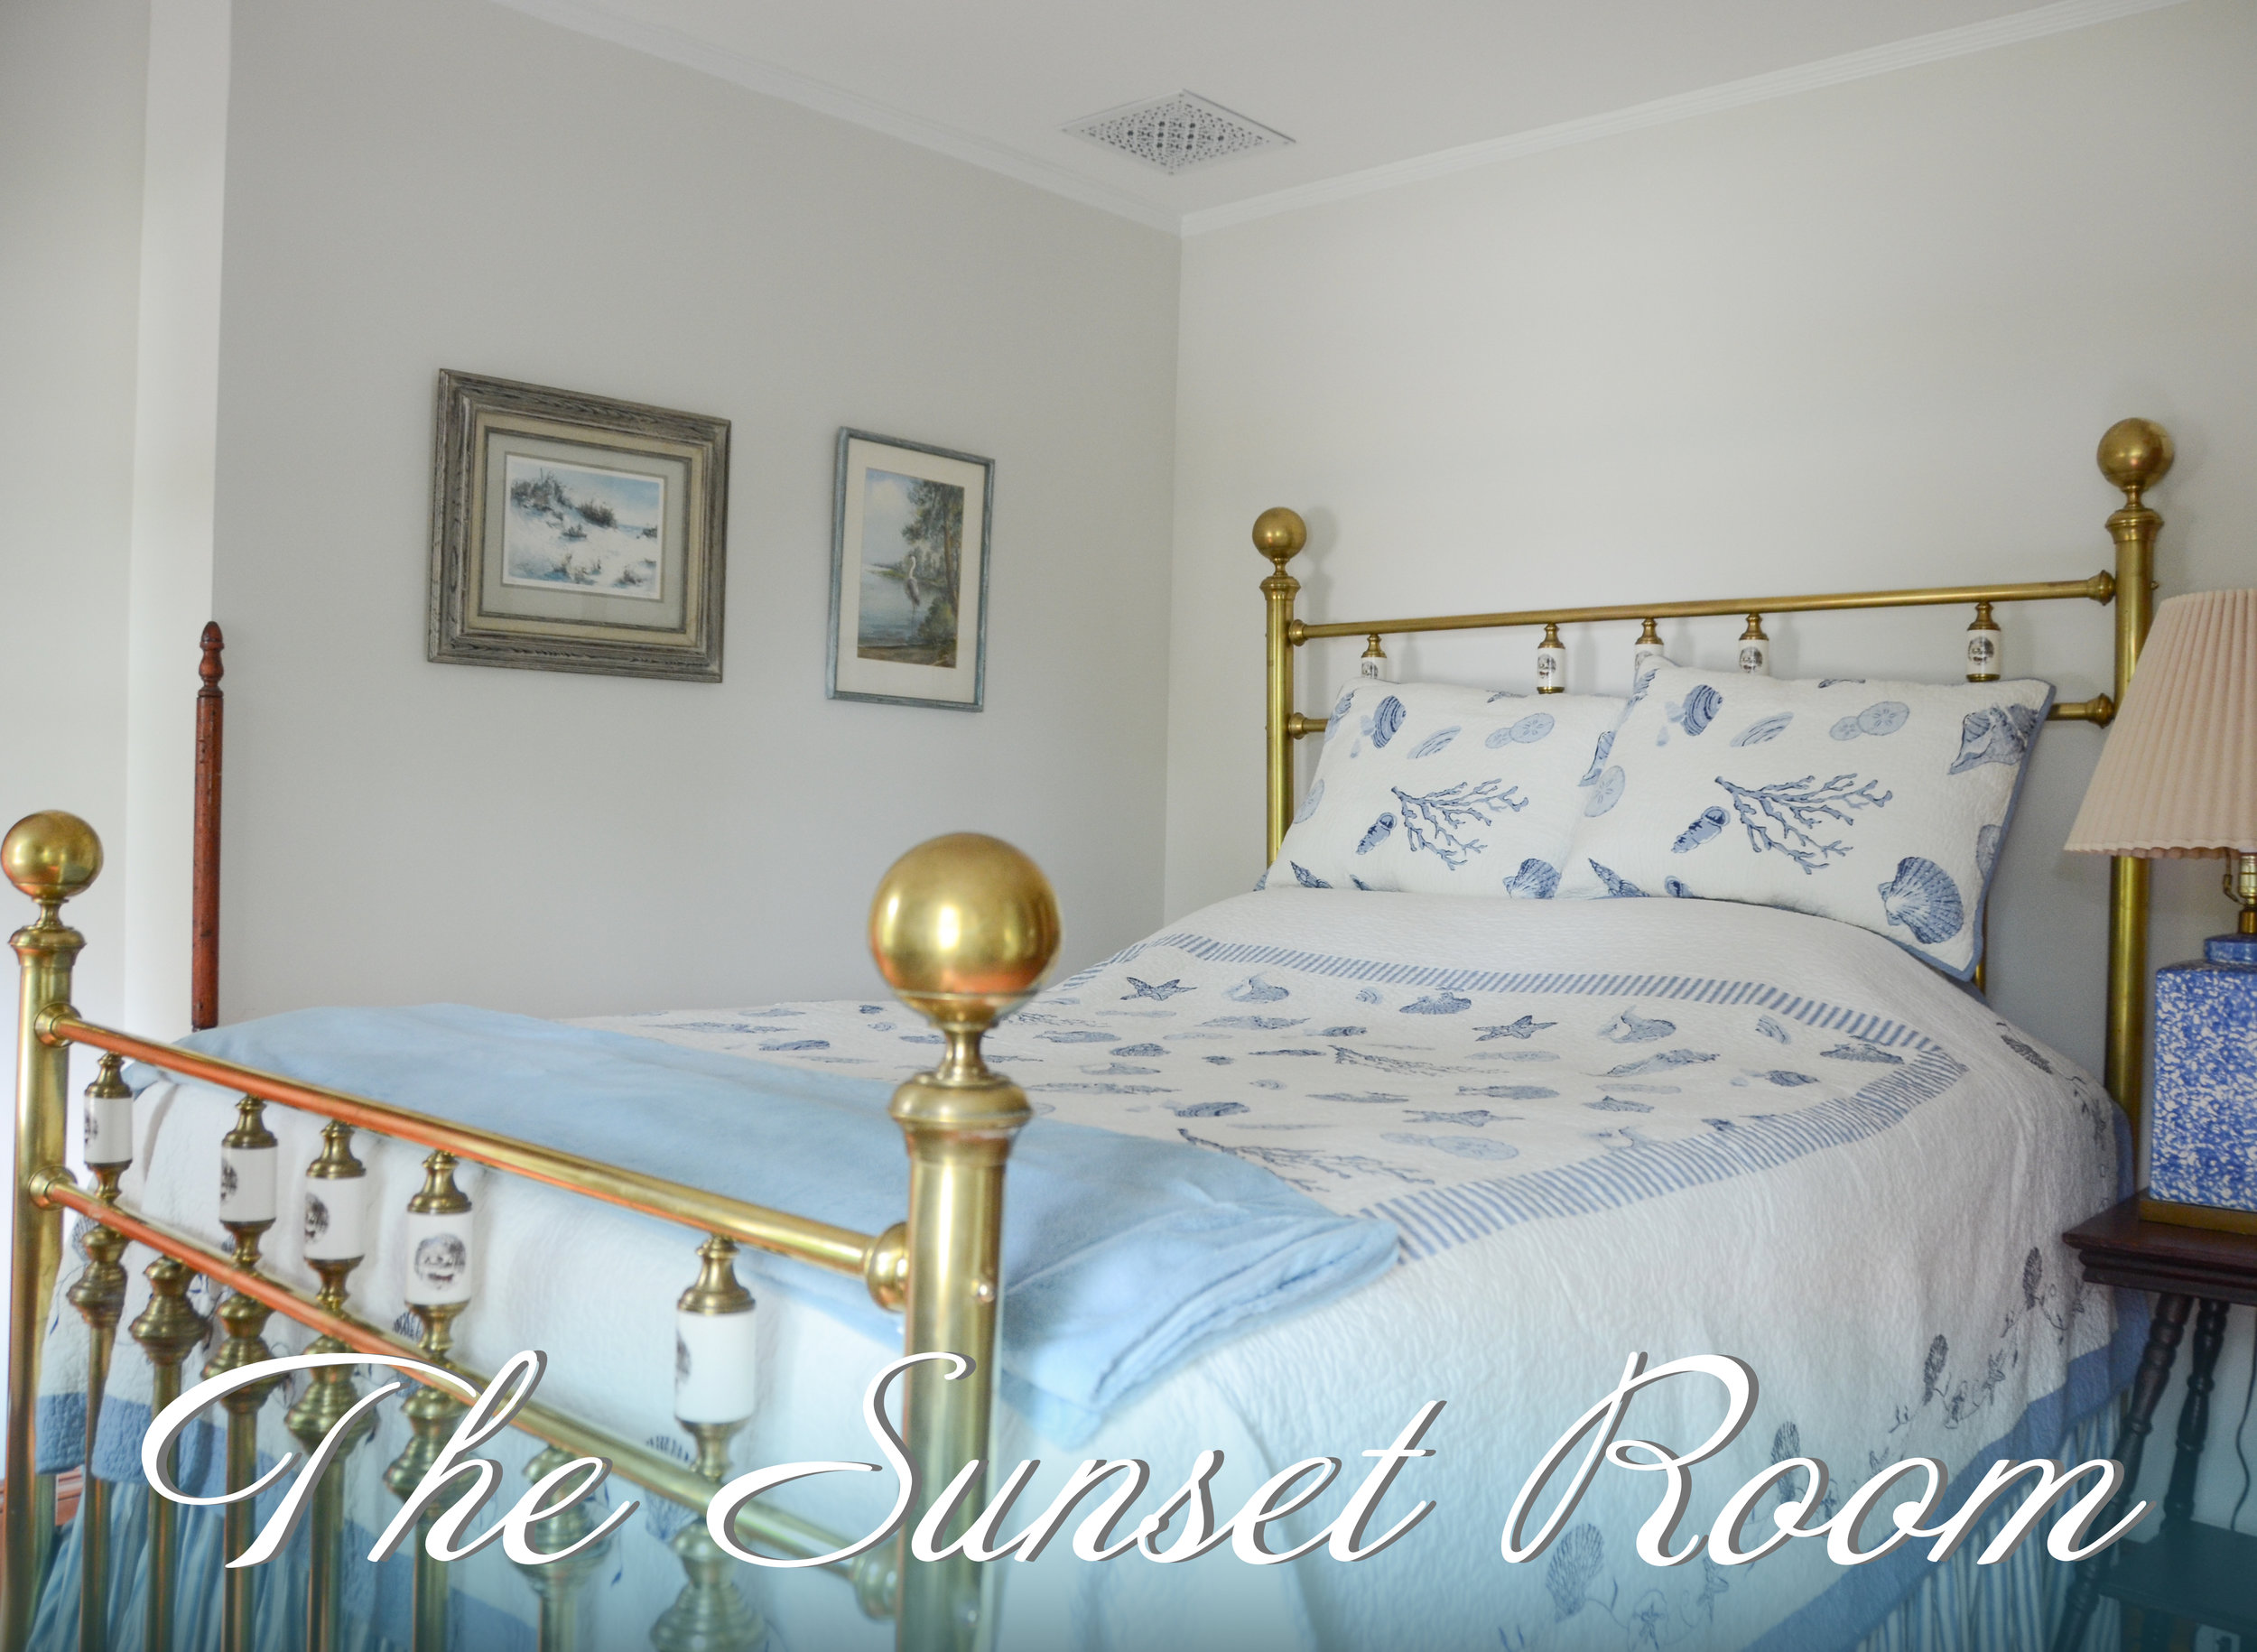 The Sunset Room